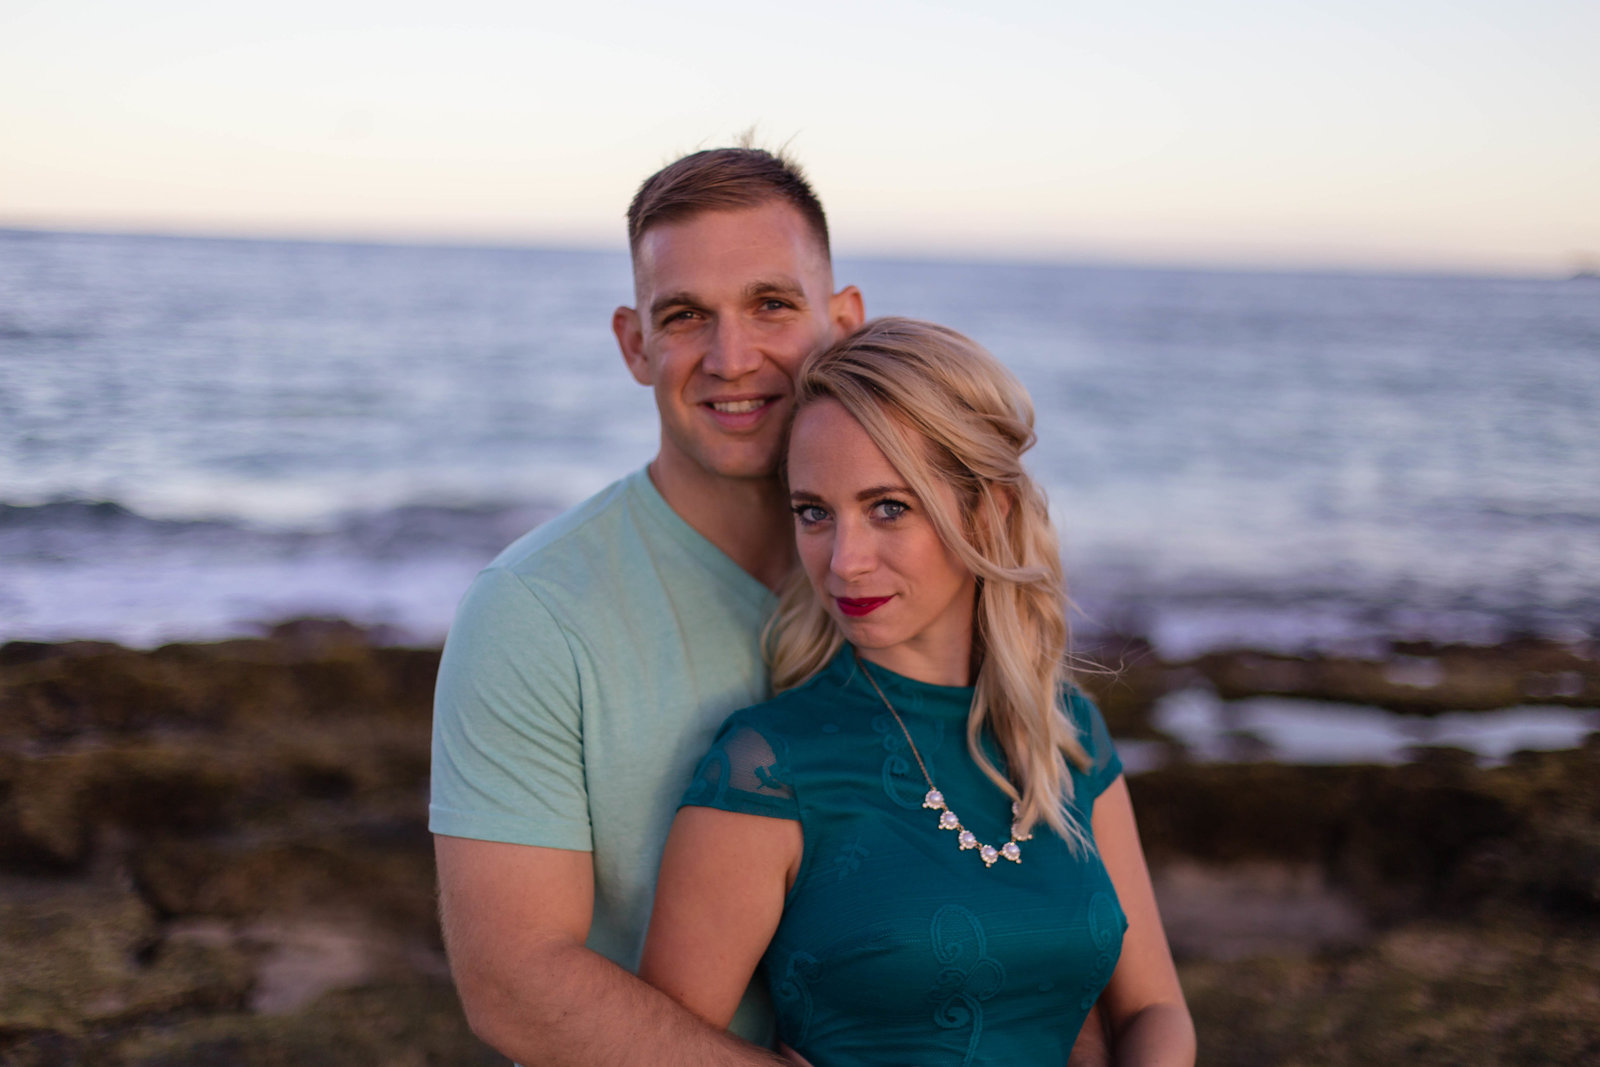 Oahu, Hawaii Lifestyle Photographer - Lifestyle Photography - Brooke Flanagan Photography - Couples on the beach